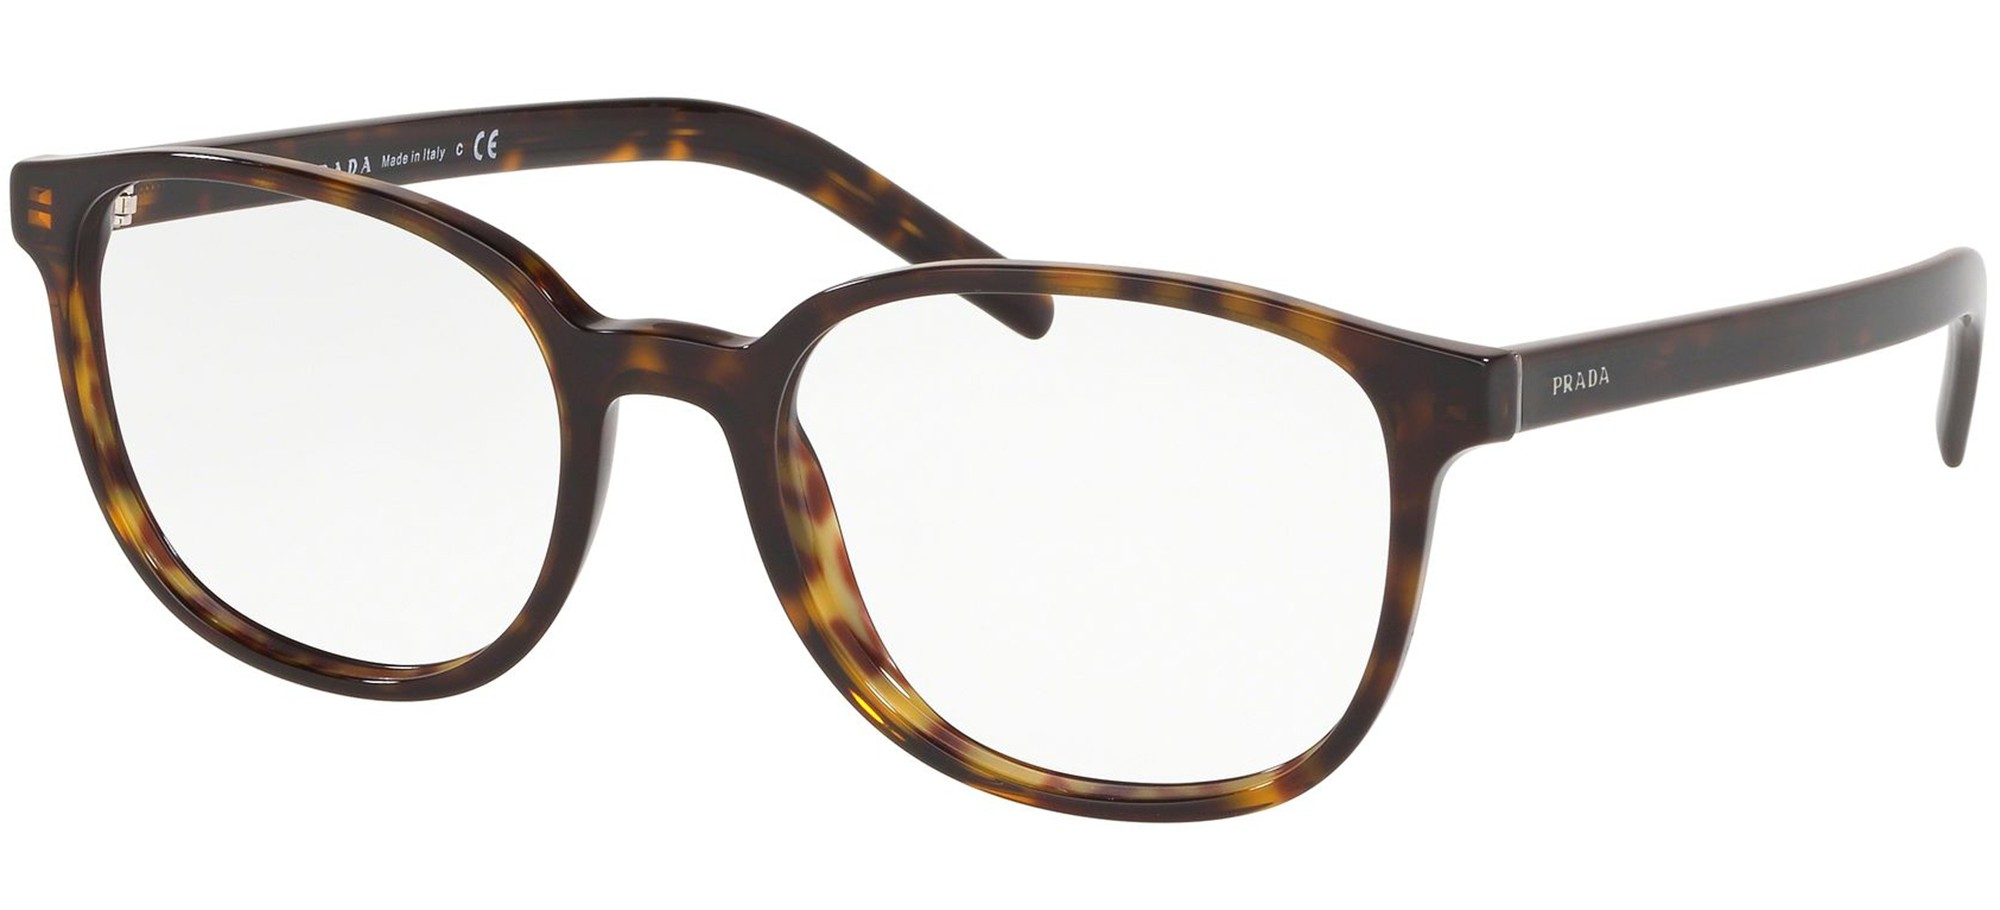 Prada eyeglasses PRADA MAN CORE COLLECTIN PR 07XV